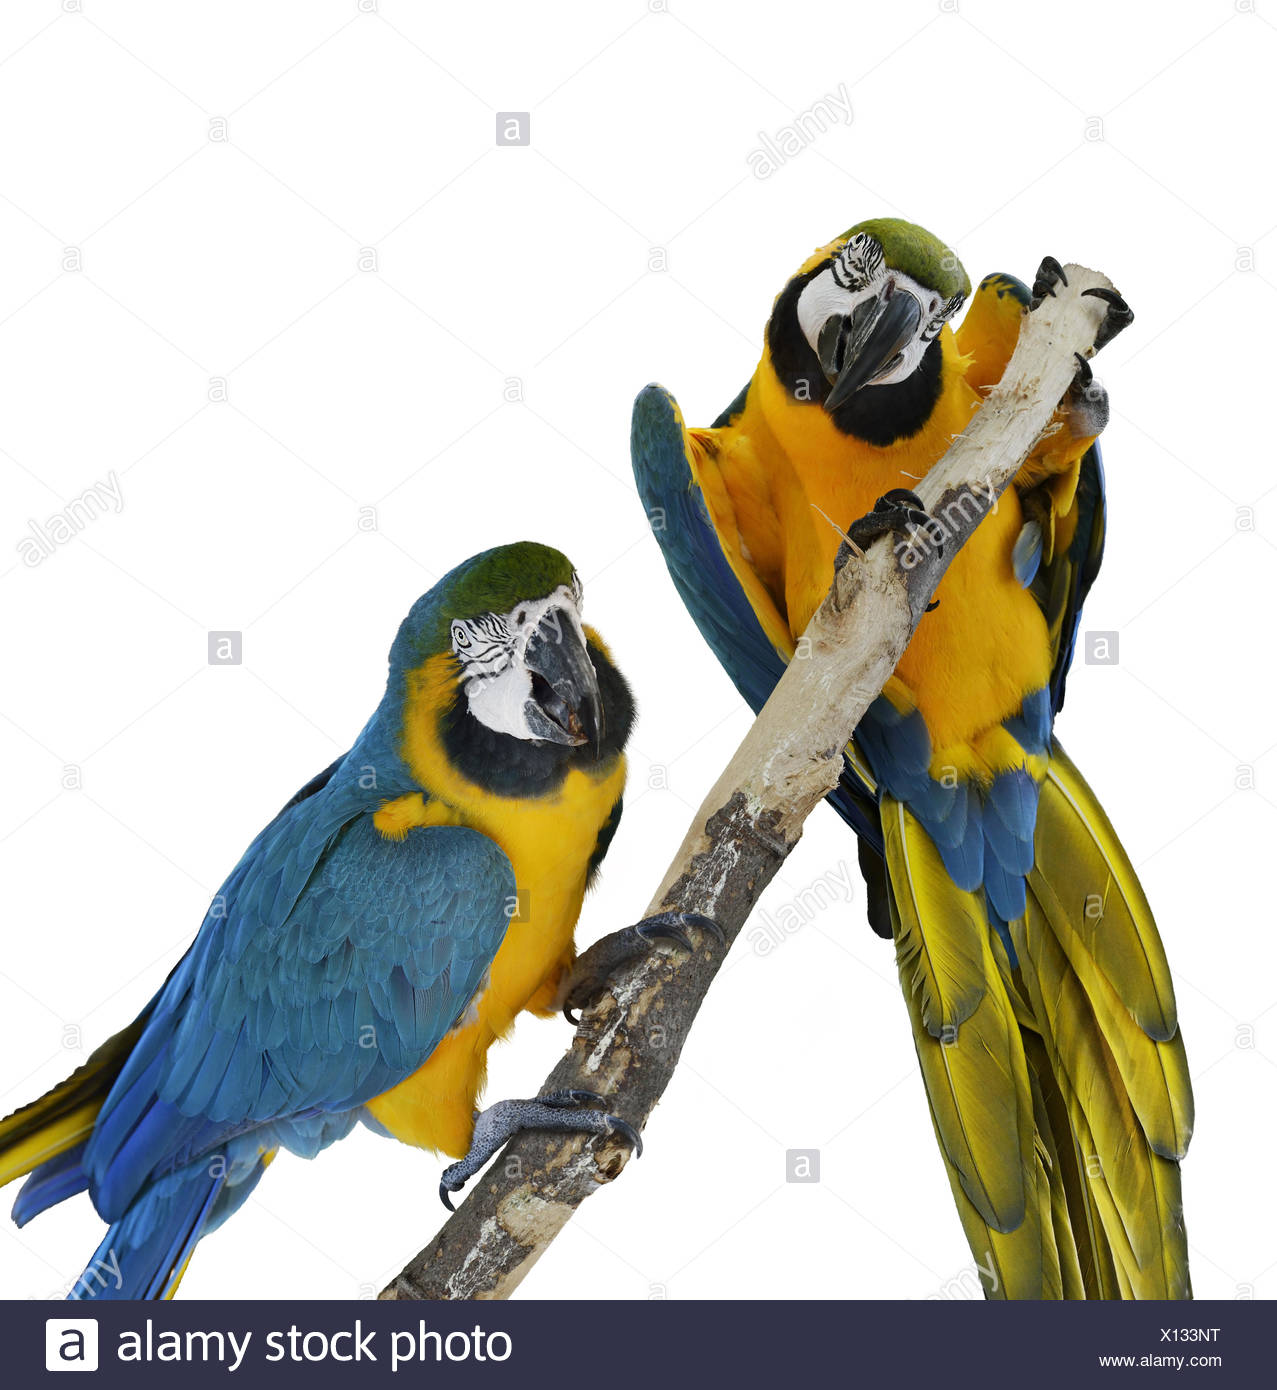 Parrots Cut Out Stock Images Pictures Alamy Parrot Origamiorigami Macaw Parrotorigami Diagram Blue Image